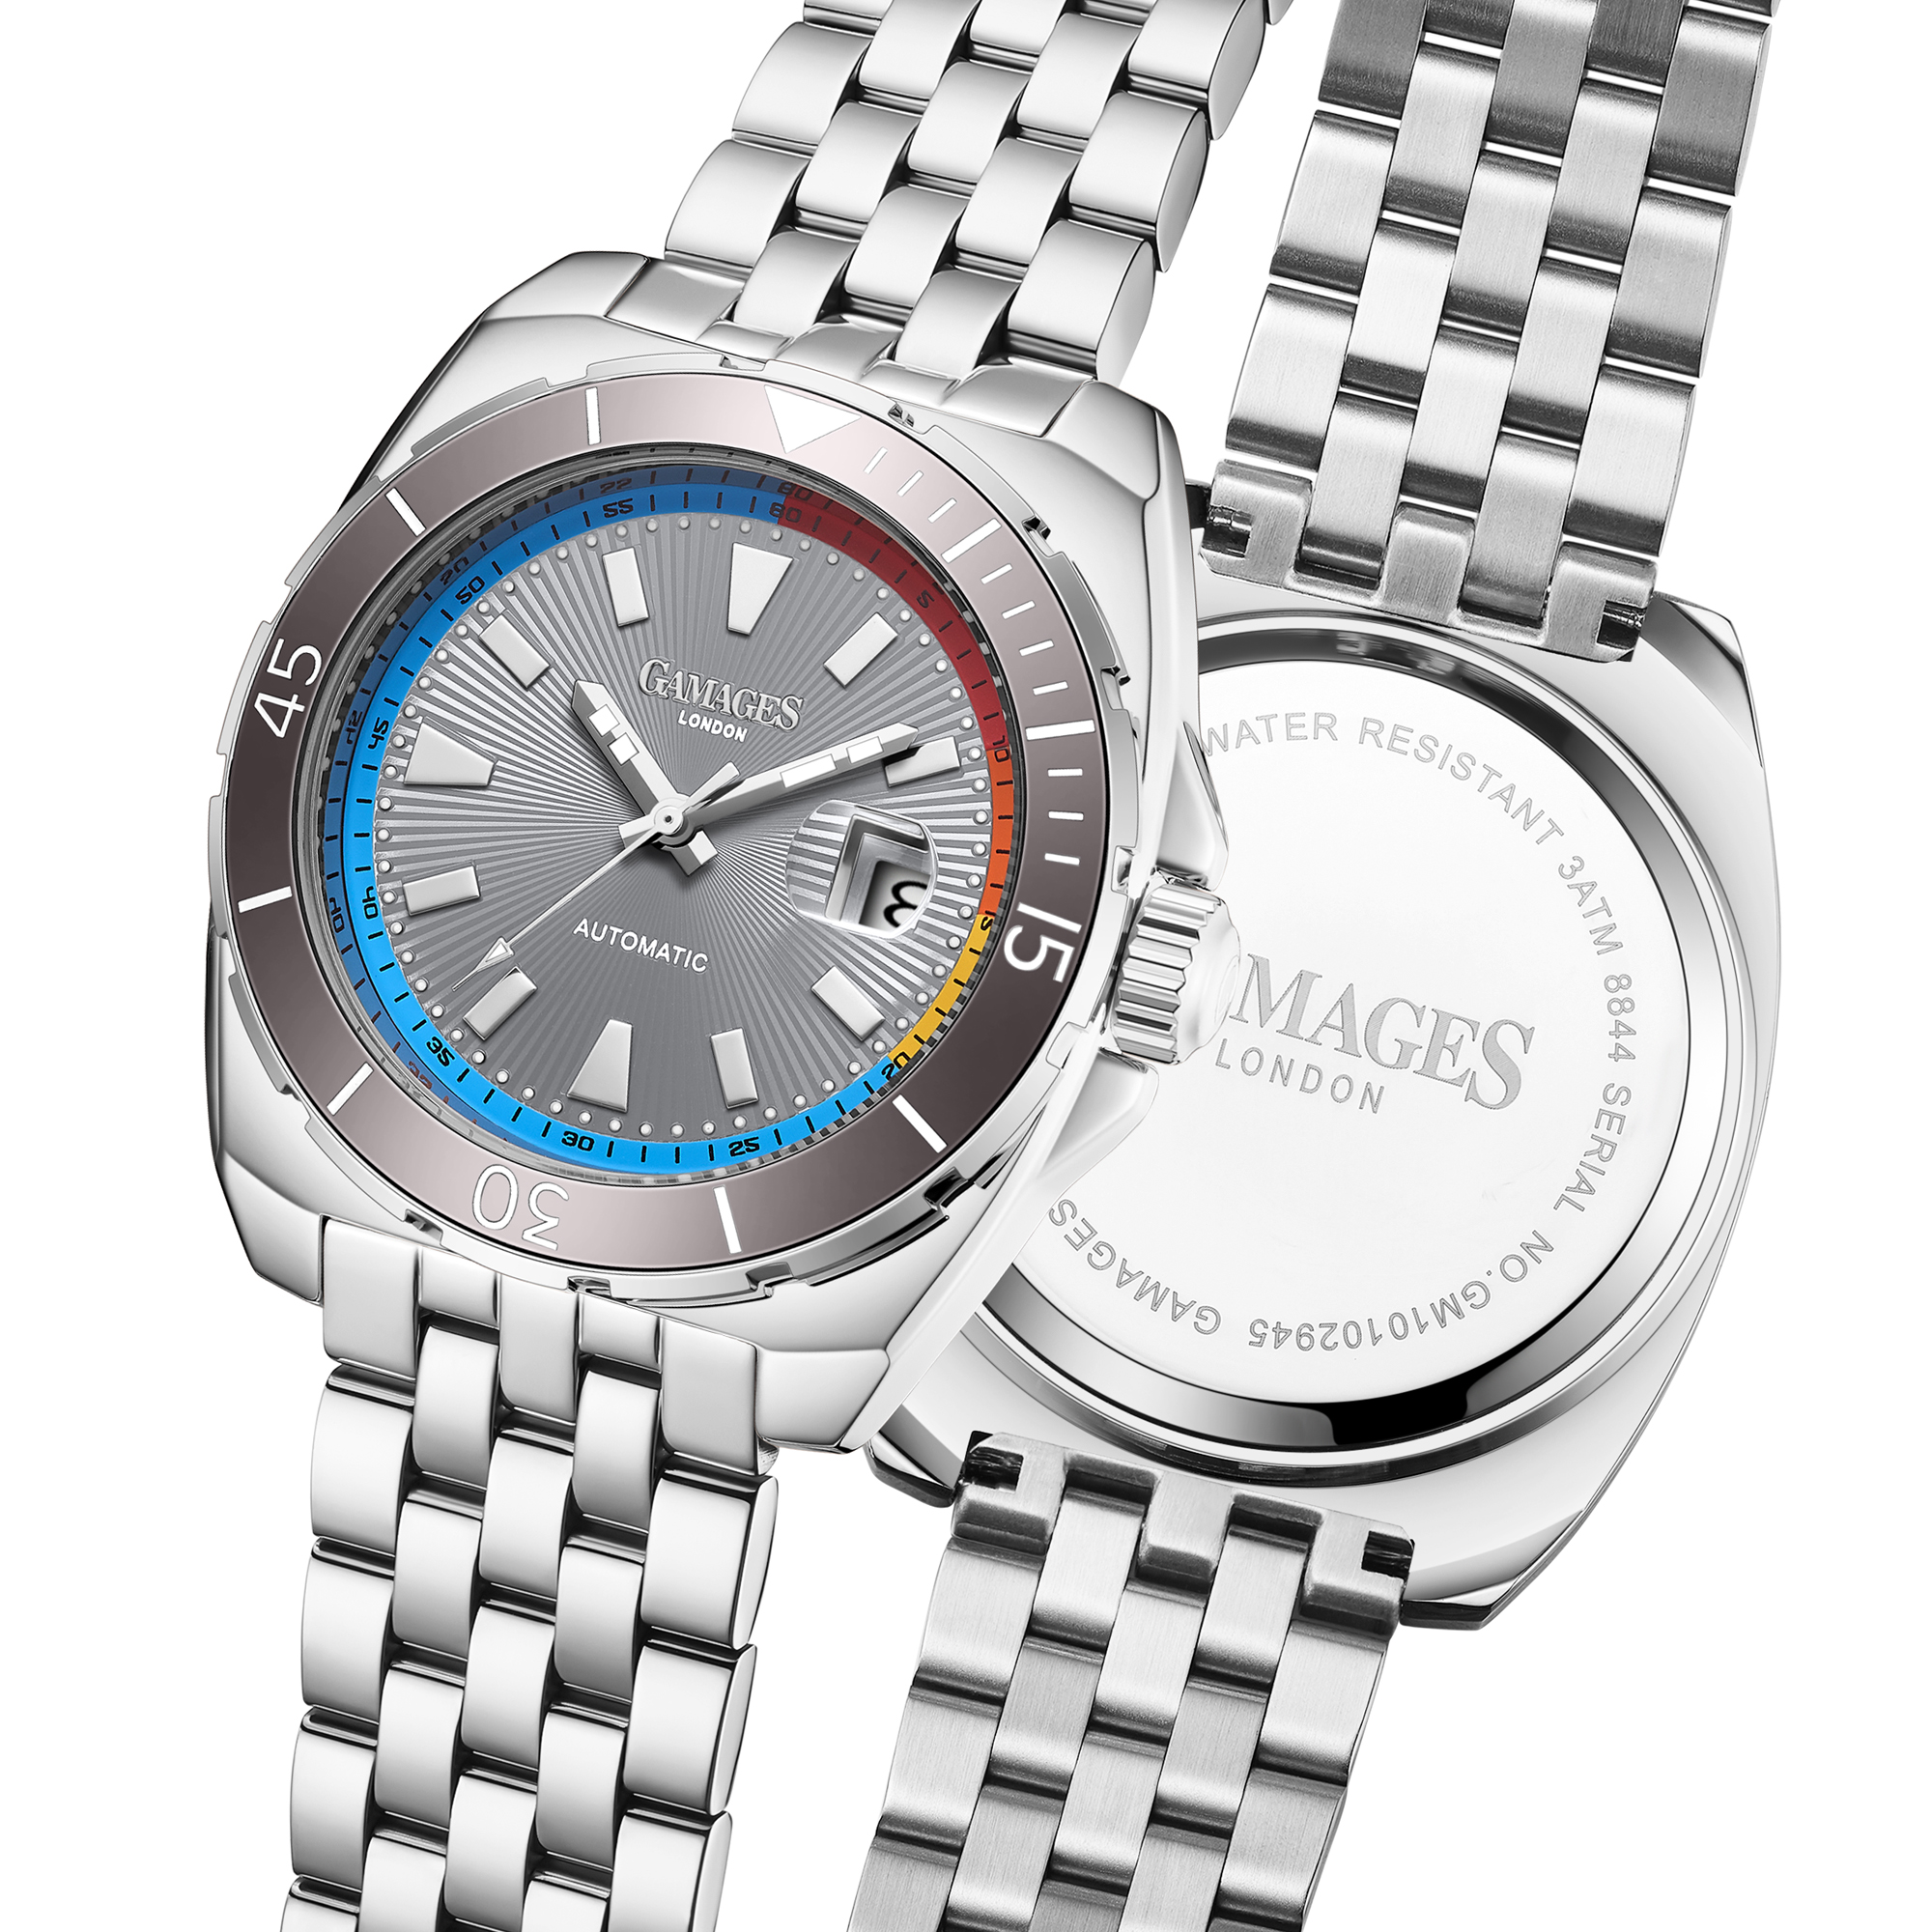 Limited Edition Hand Assembled GAMAGES Regal Automatic Steel – 5 Year Warranty & Free Delivery - Image 5 of 5